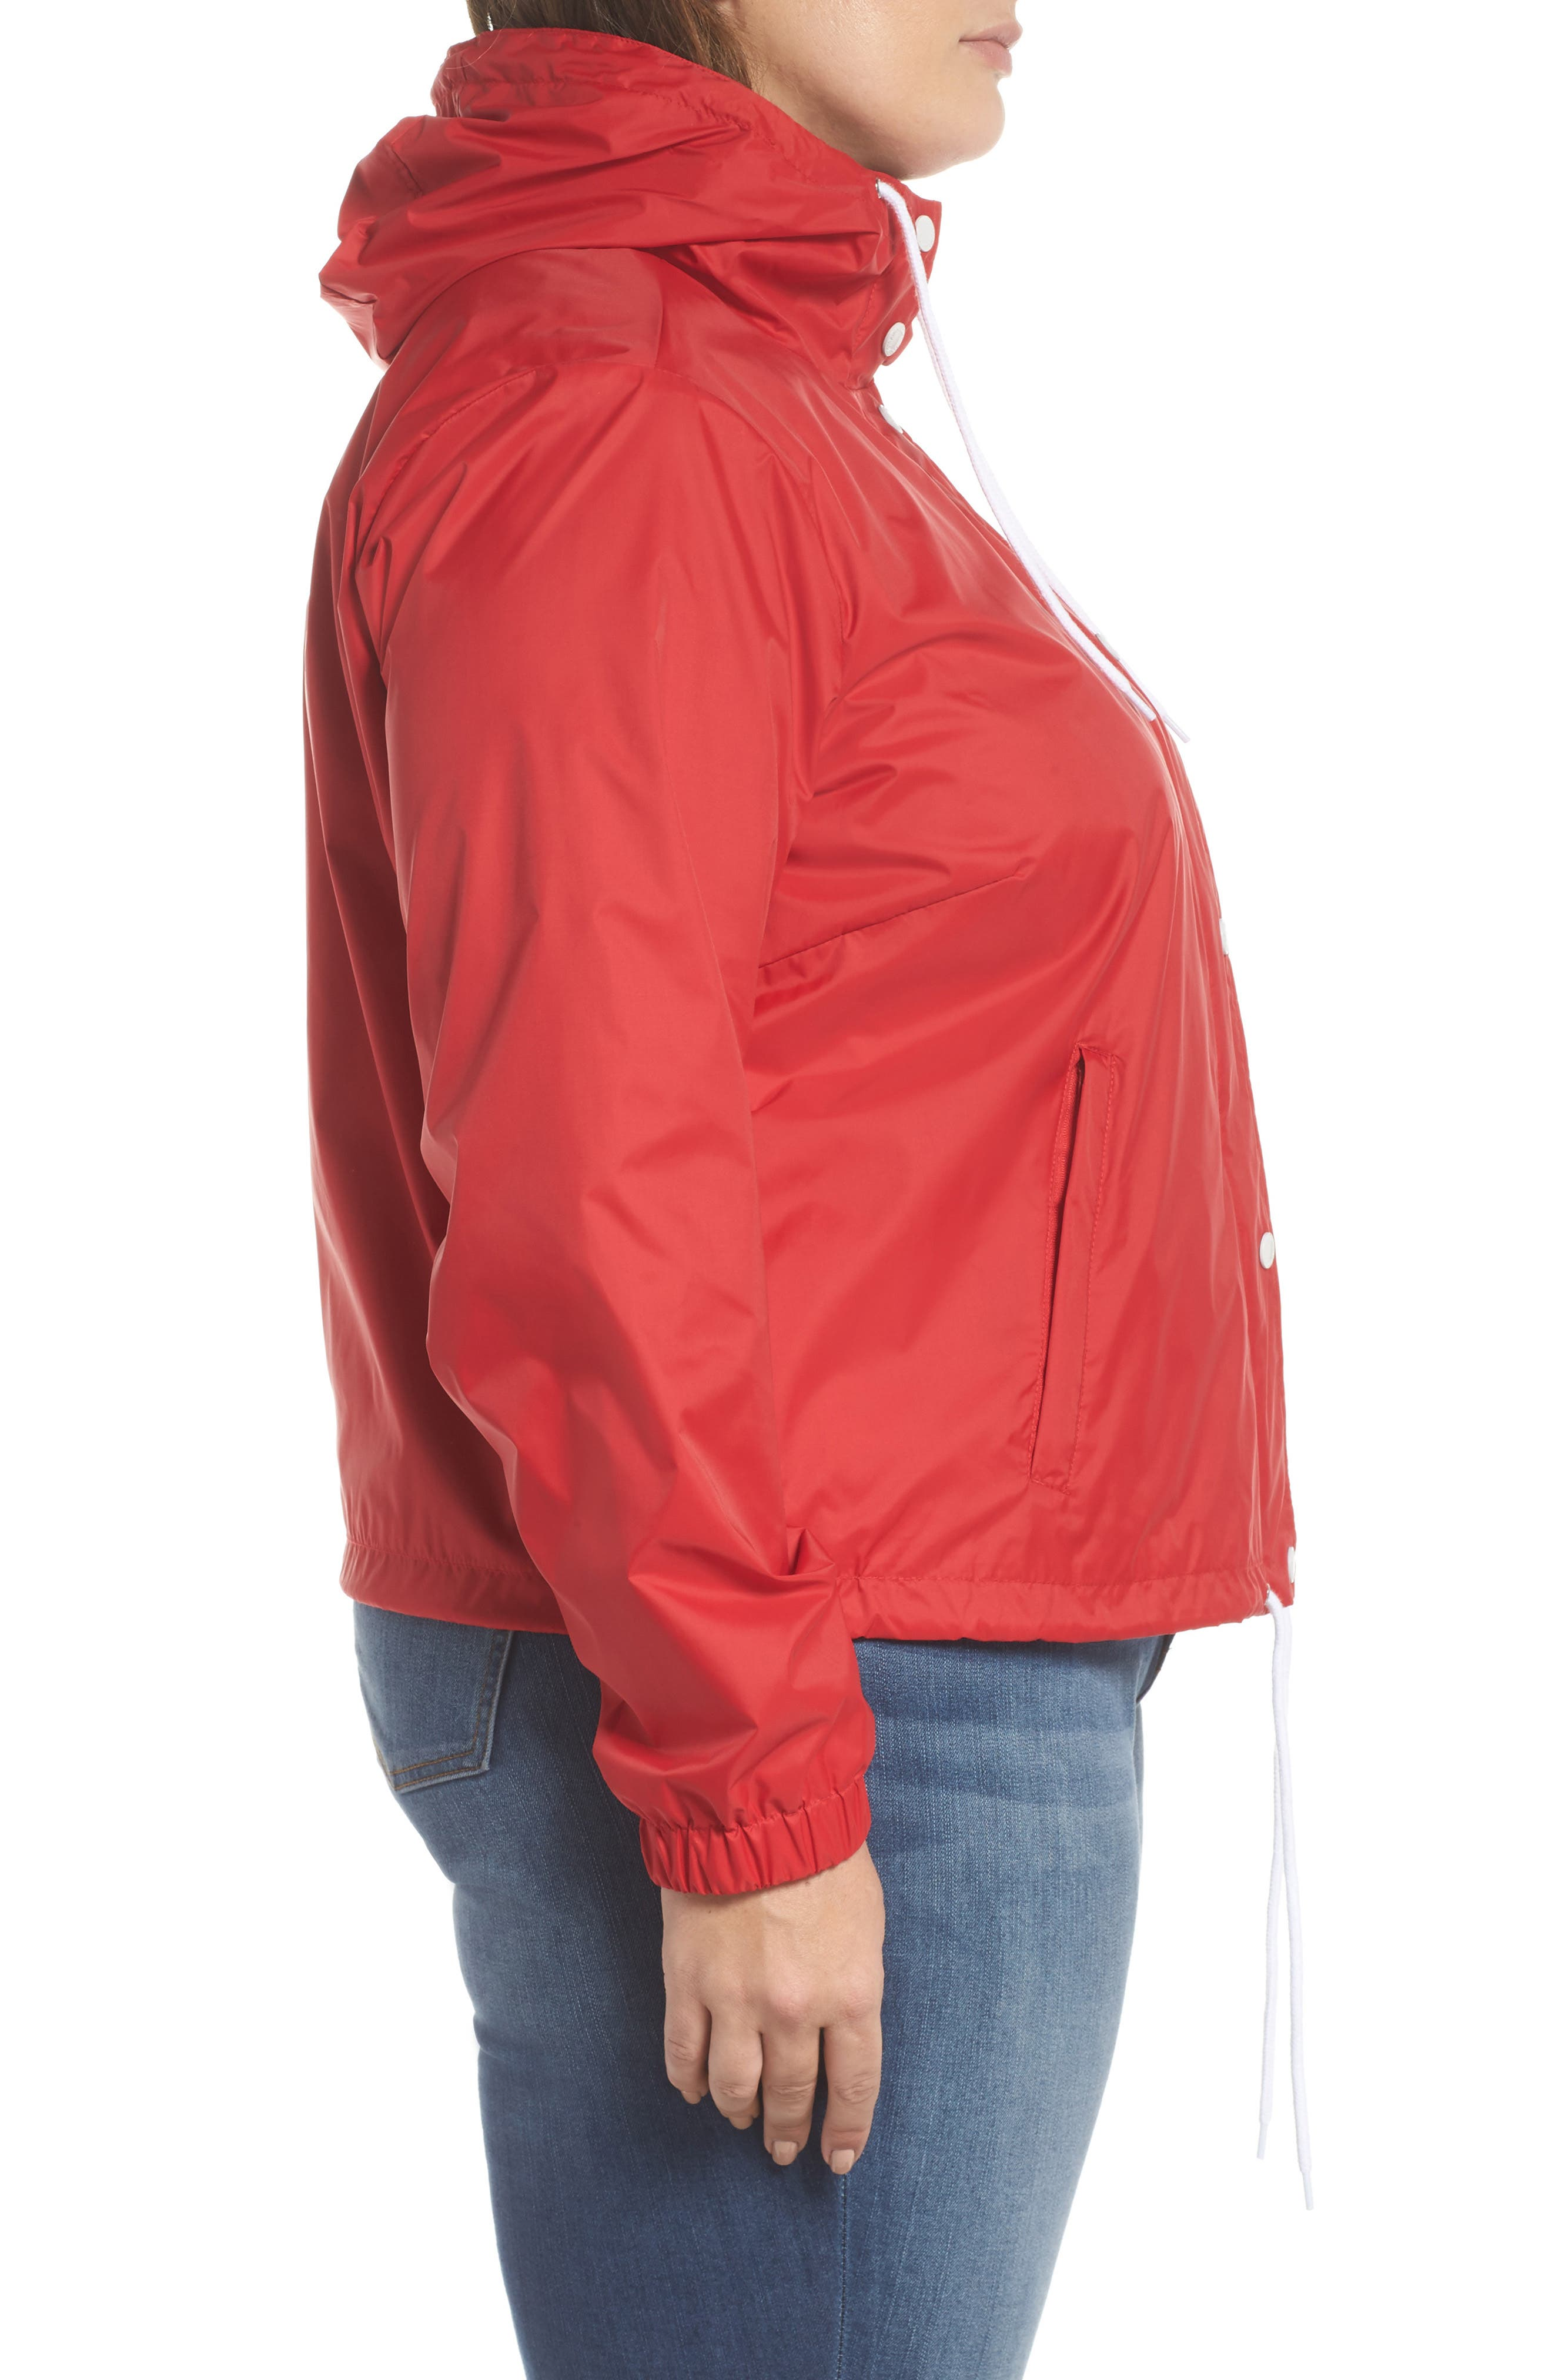 Retro Hooded Coach's Jacket,                             Alternate thumbnail 11, color,